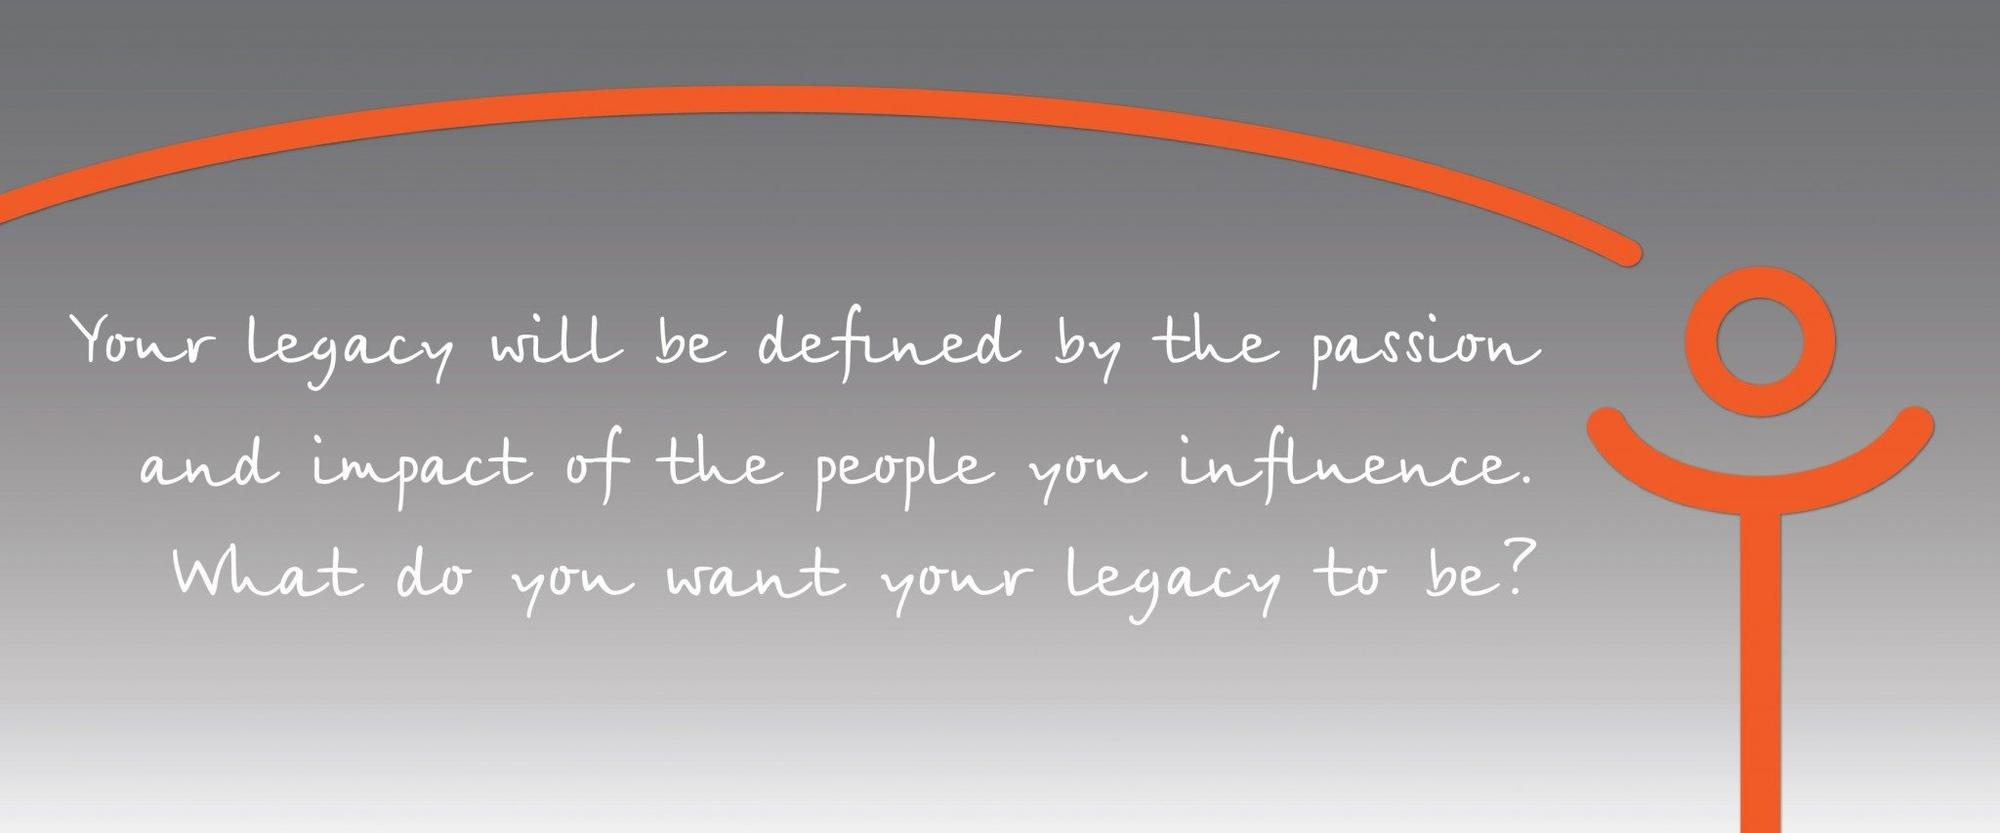 intelivate your leadership legacy definition will be defined by the passion and impact of the